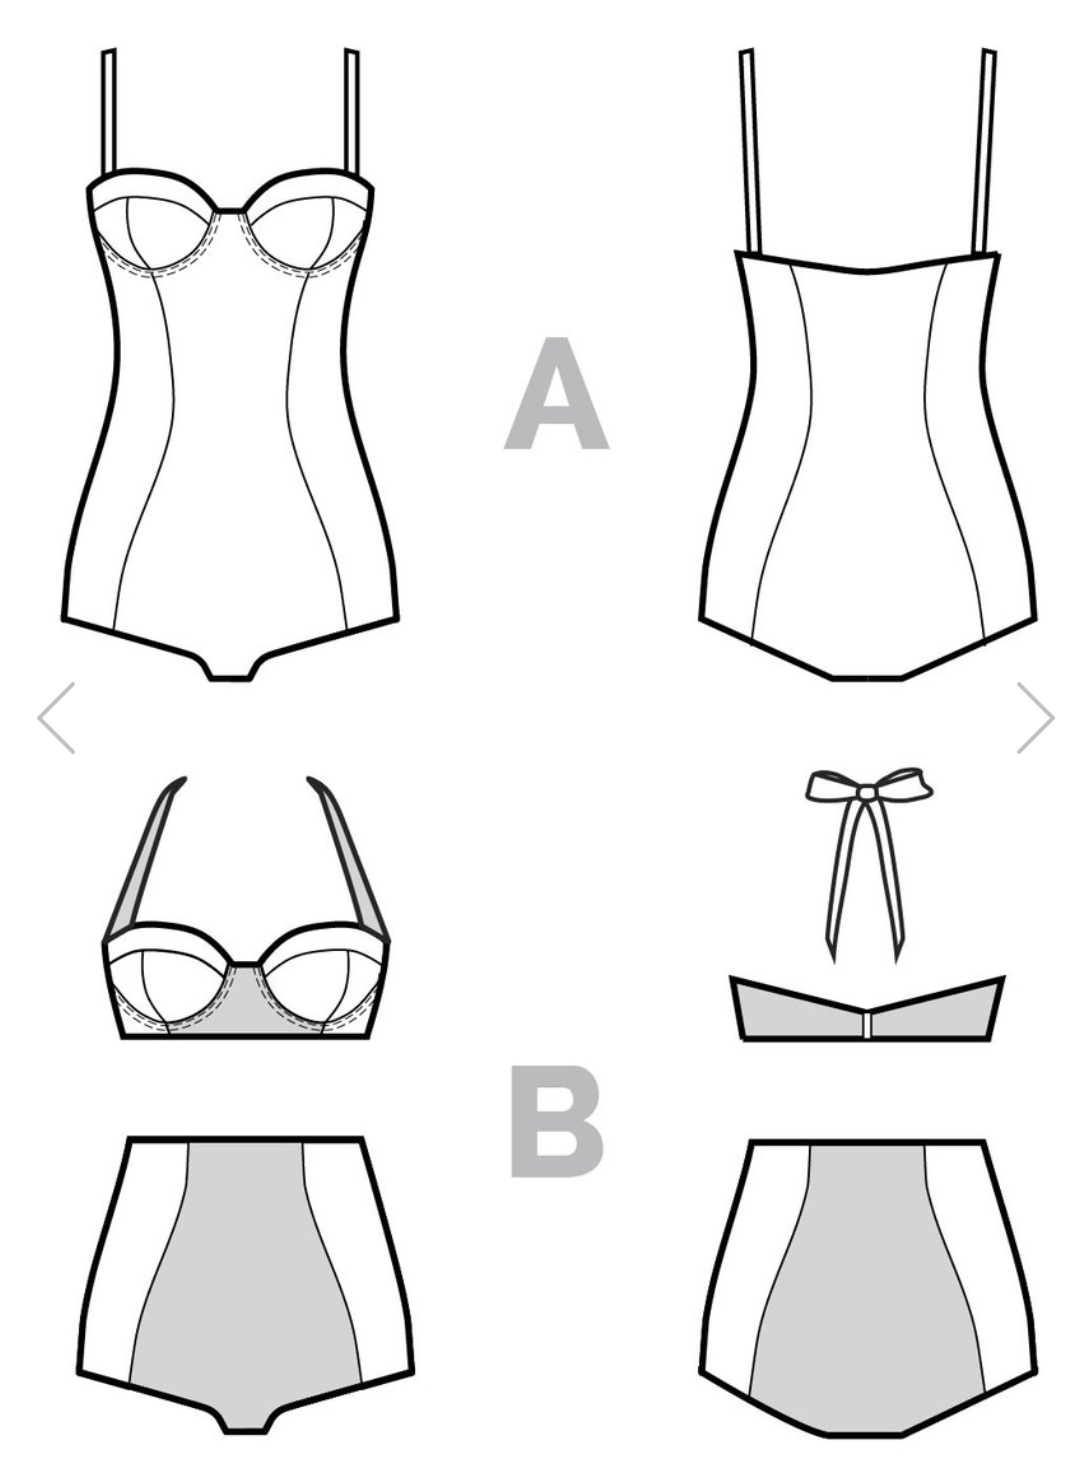 6c22834635 The Sophie swimsuit and bikini pattern features a 3-piece balconette cup  offering great support. View A is a classic one-piece with a pronounced  hourglass ...